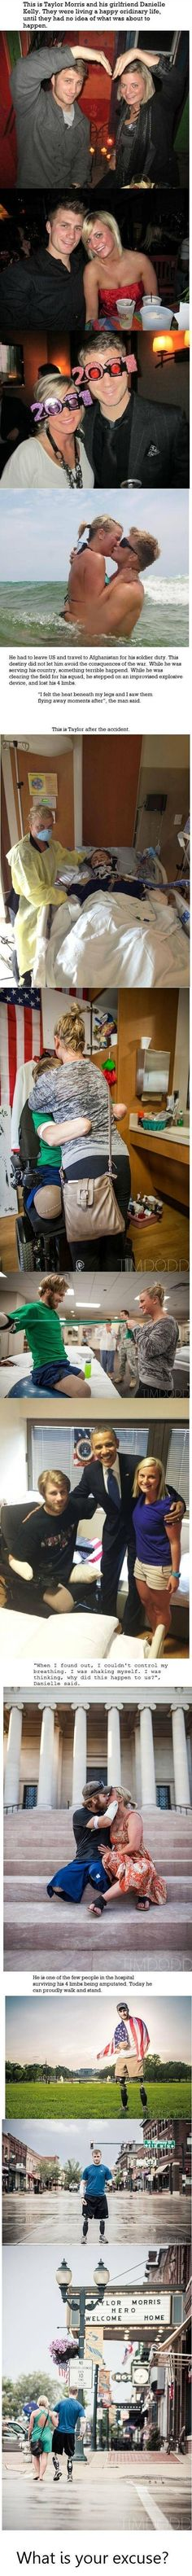 What is your excuse? // funny pictures - funny photos - funny images - funny pics - funny quotes - #lol #humor #funnypictures